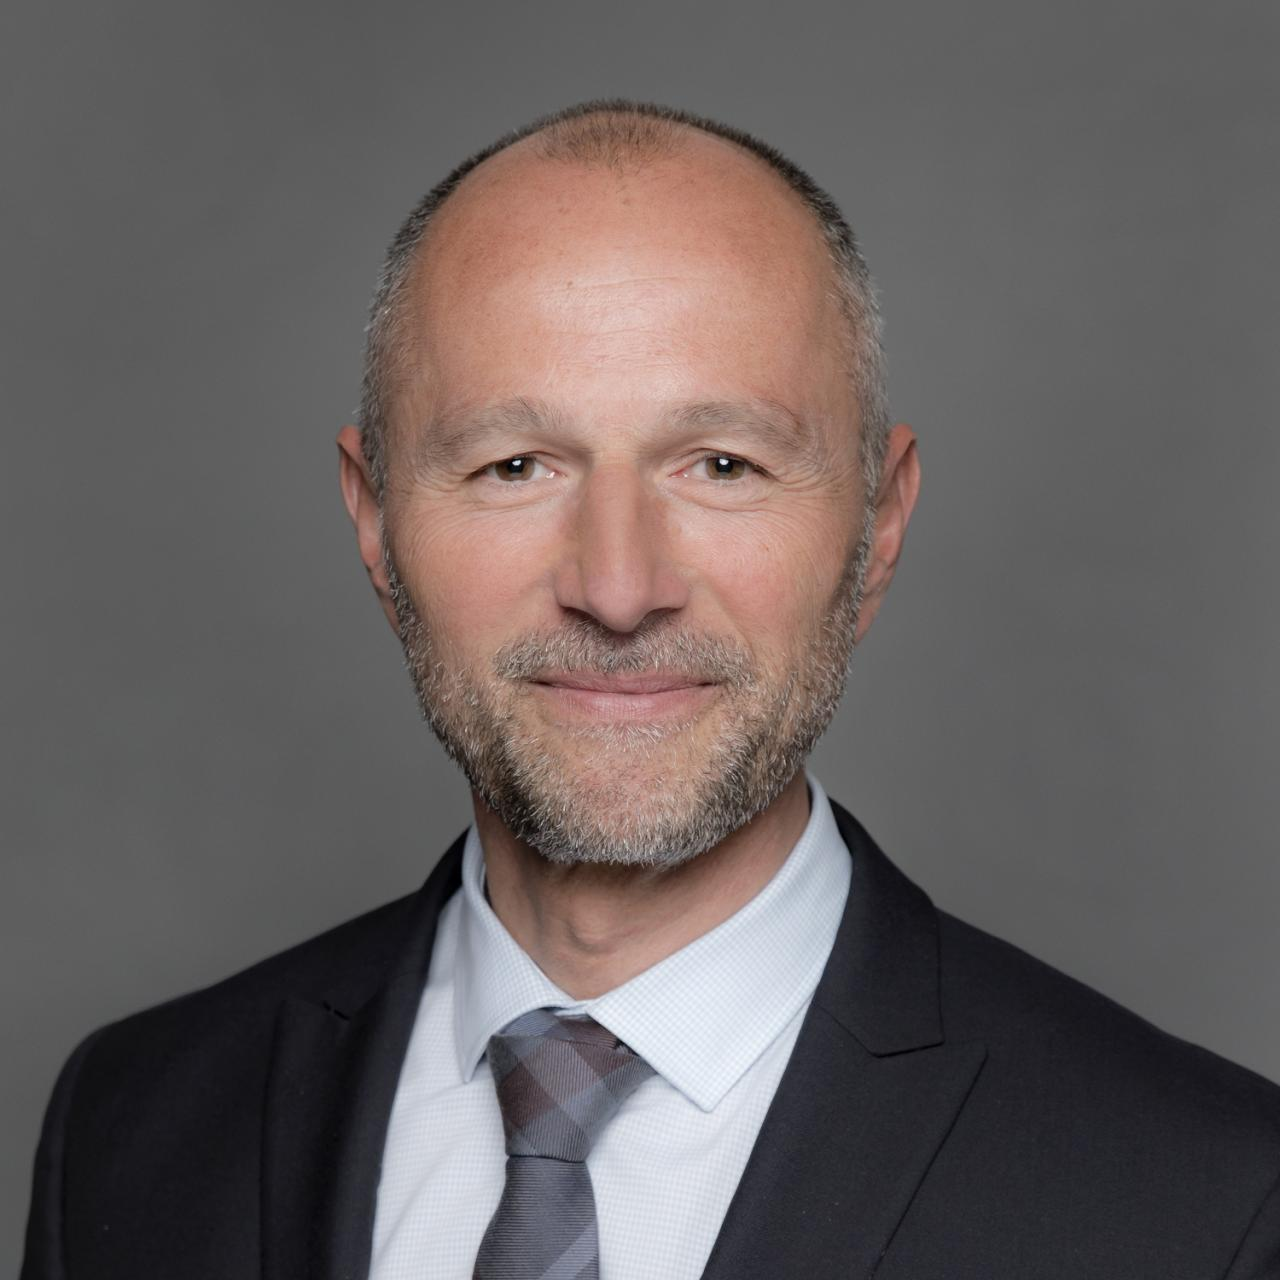 Andreas Liris, Chief Information Officer